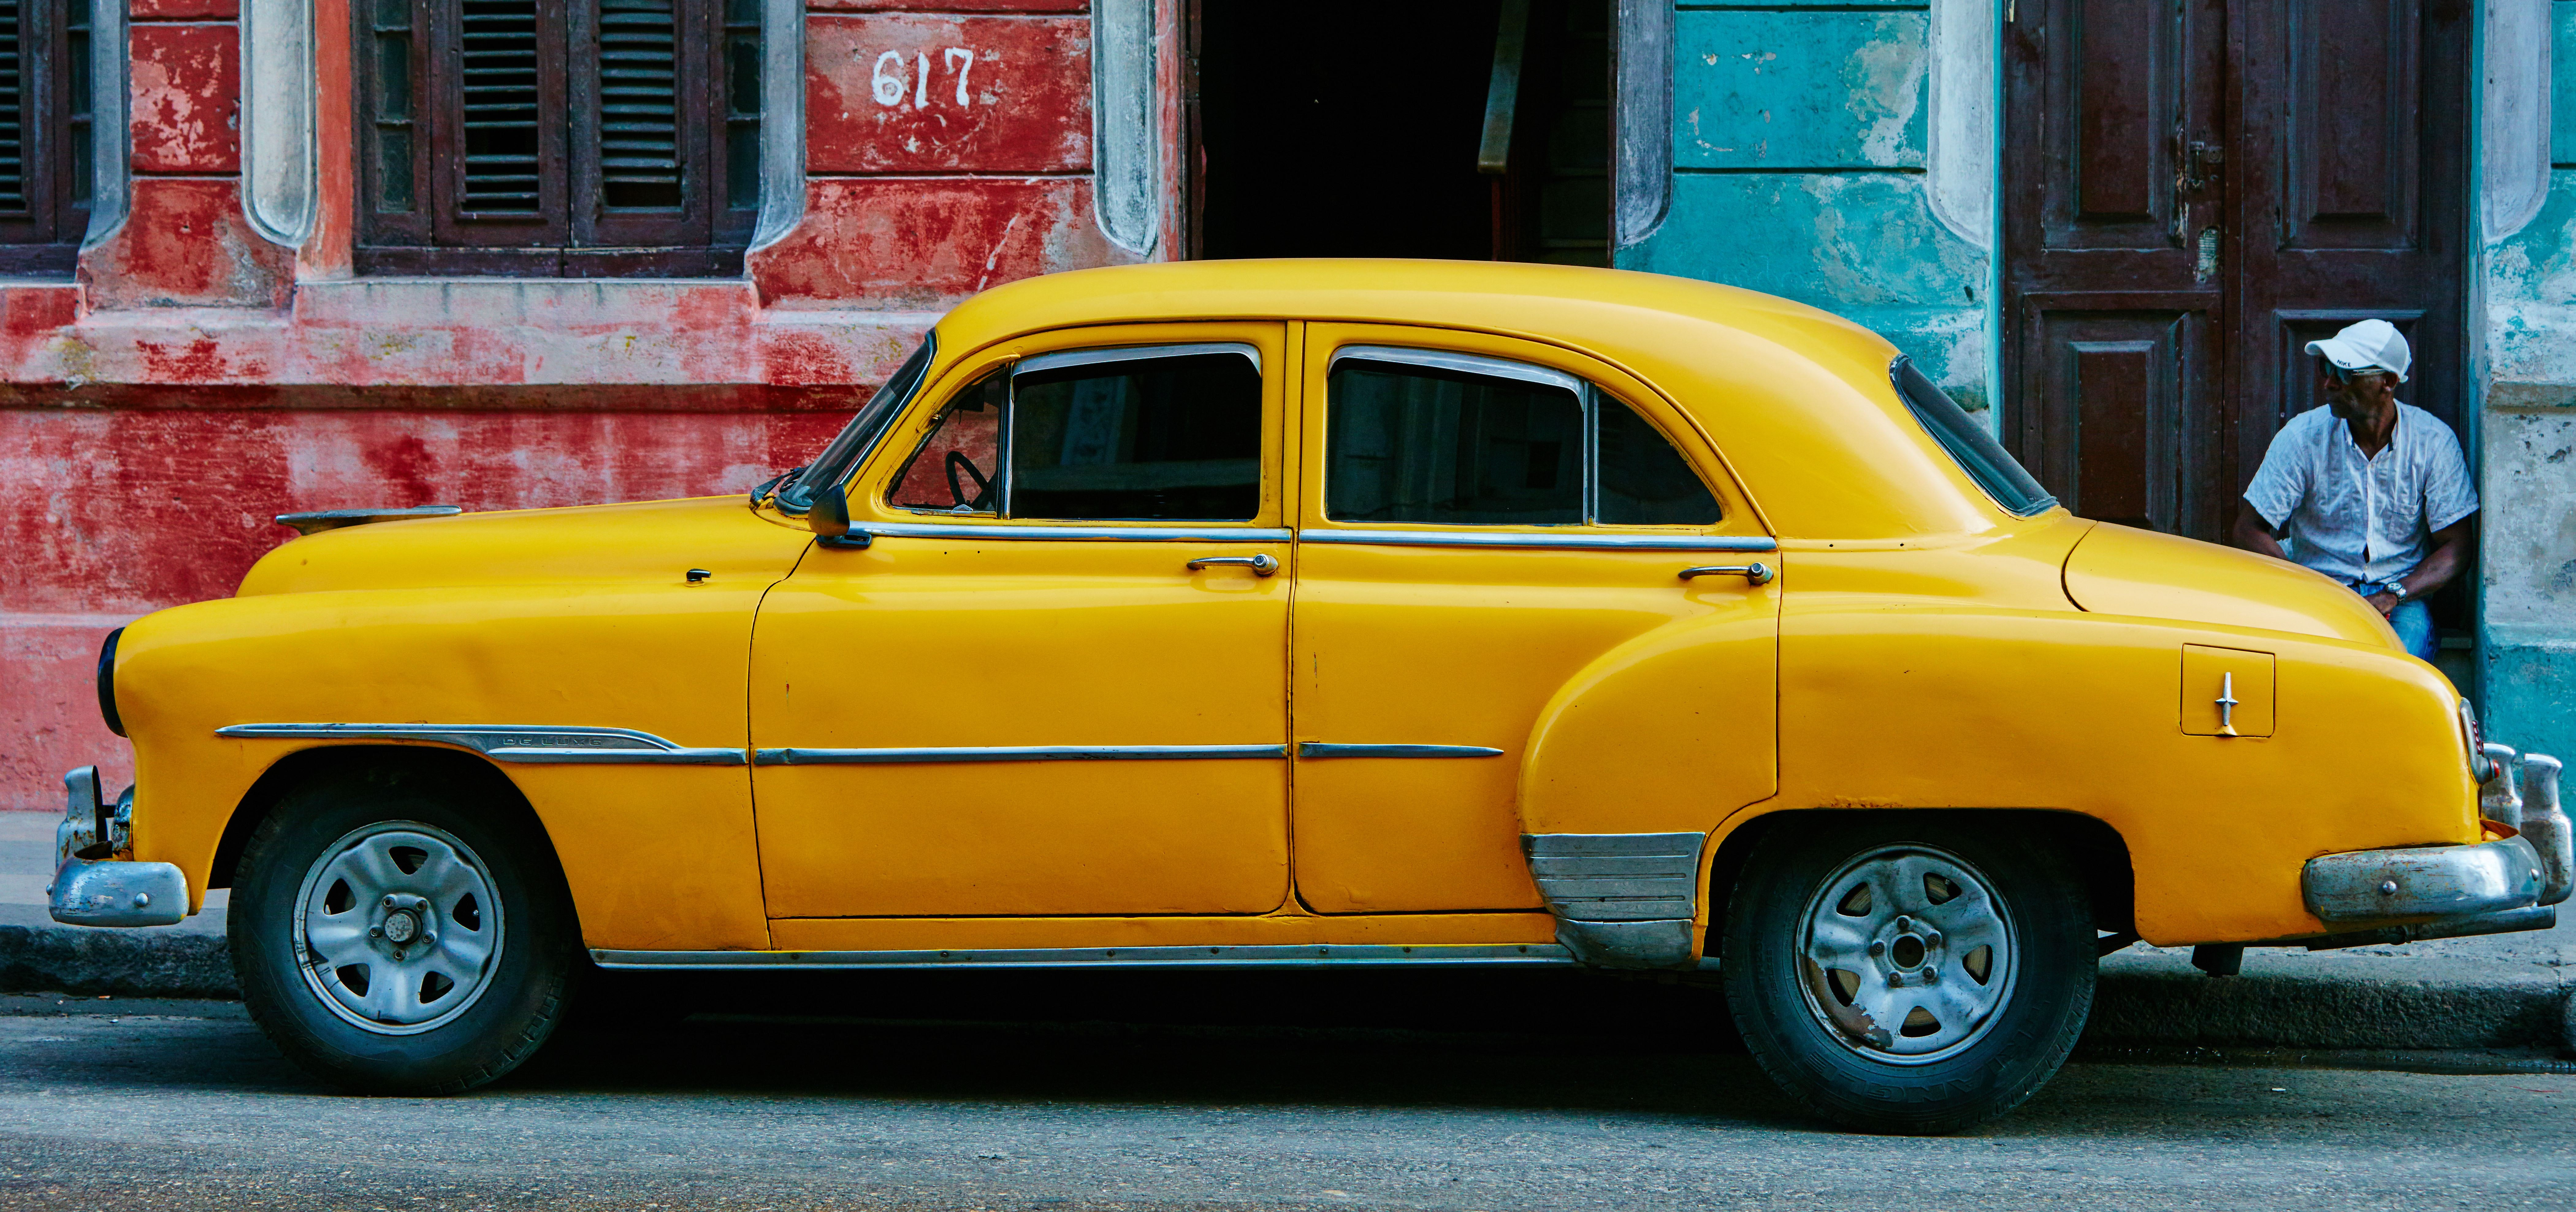 Parked vintage yellow car on street in Havana with an onlooking man in the background